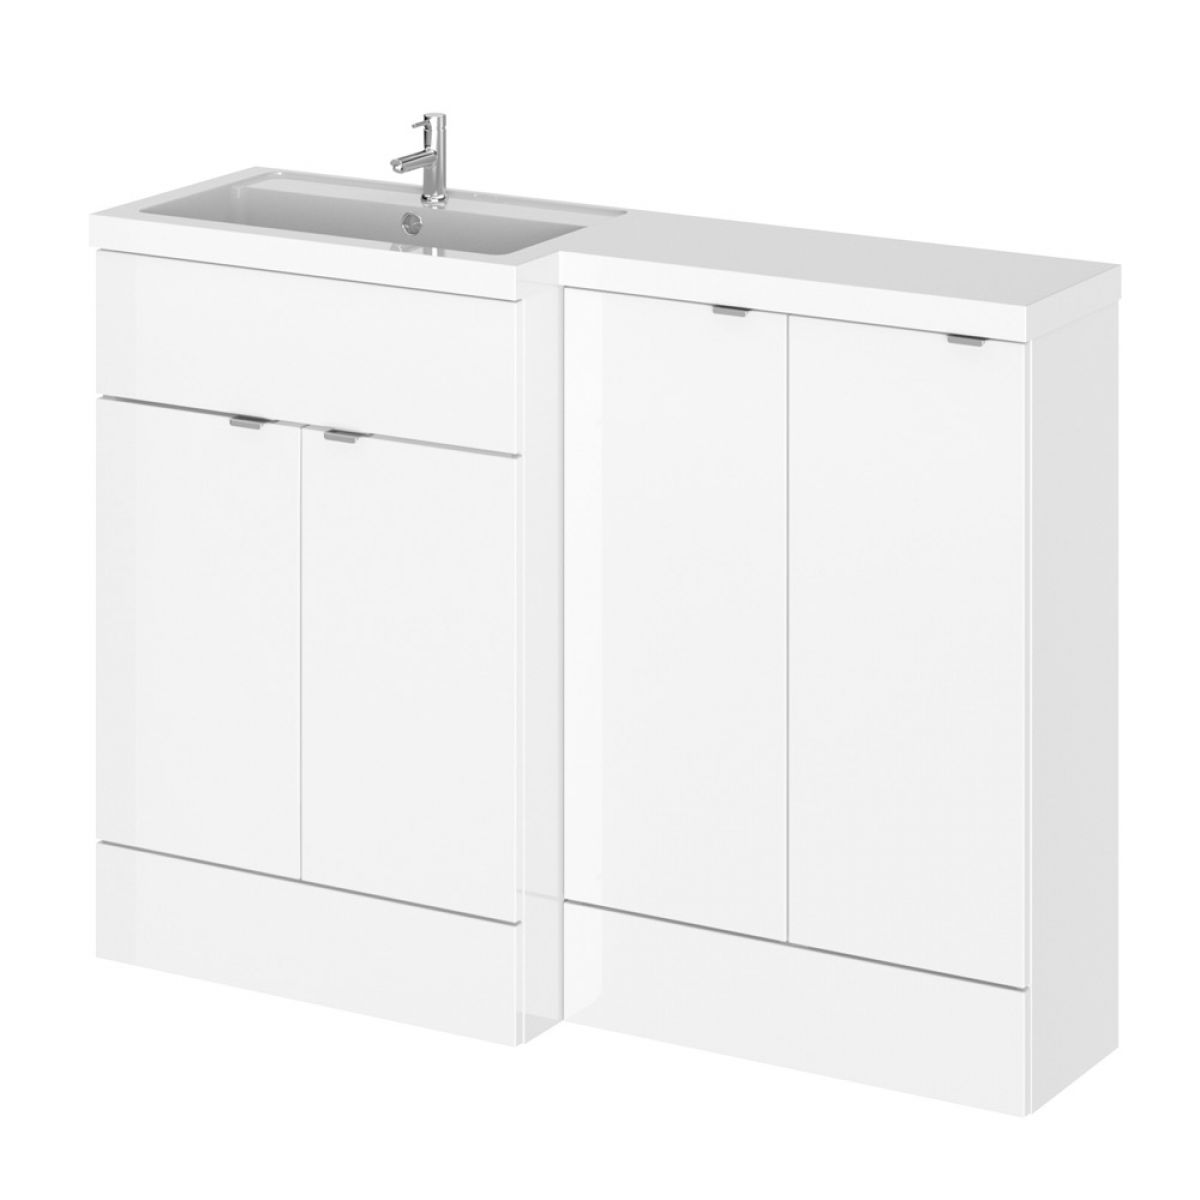 Hudson Reed Fusion Gloss White Slimline Storage Furniture Pack 1200mm